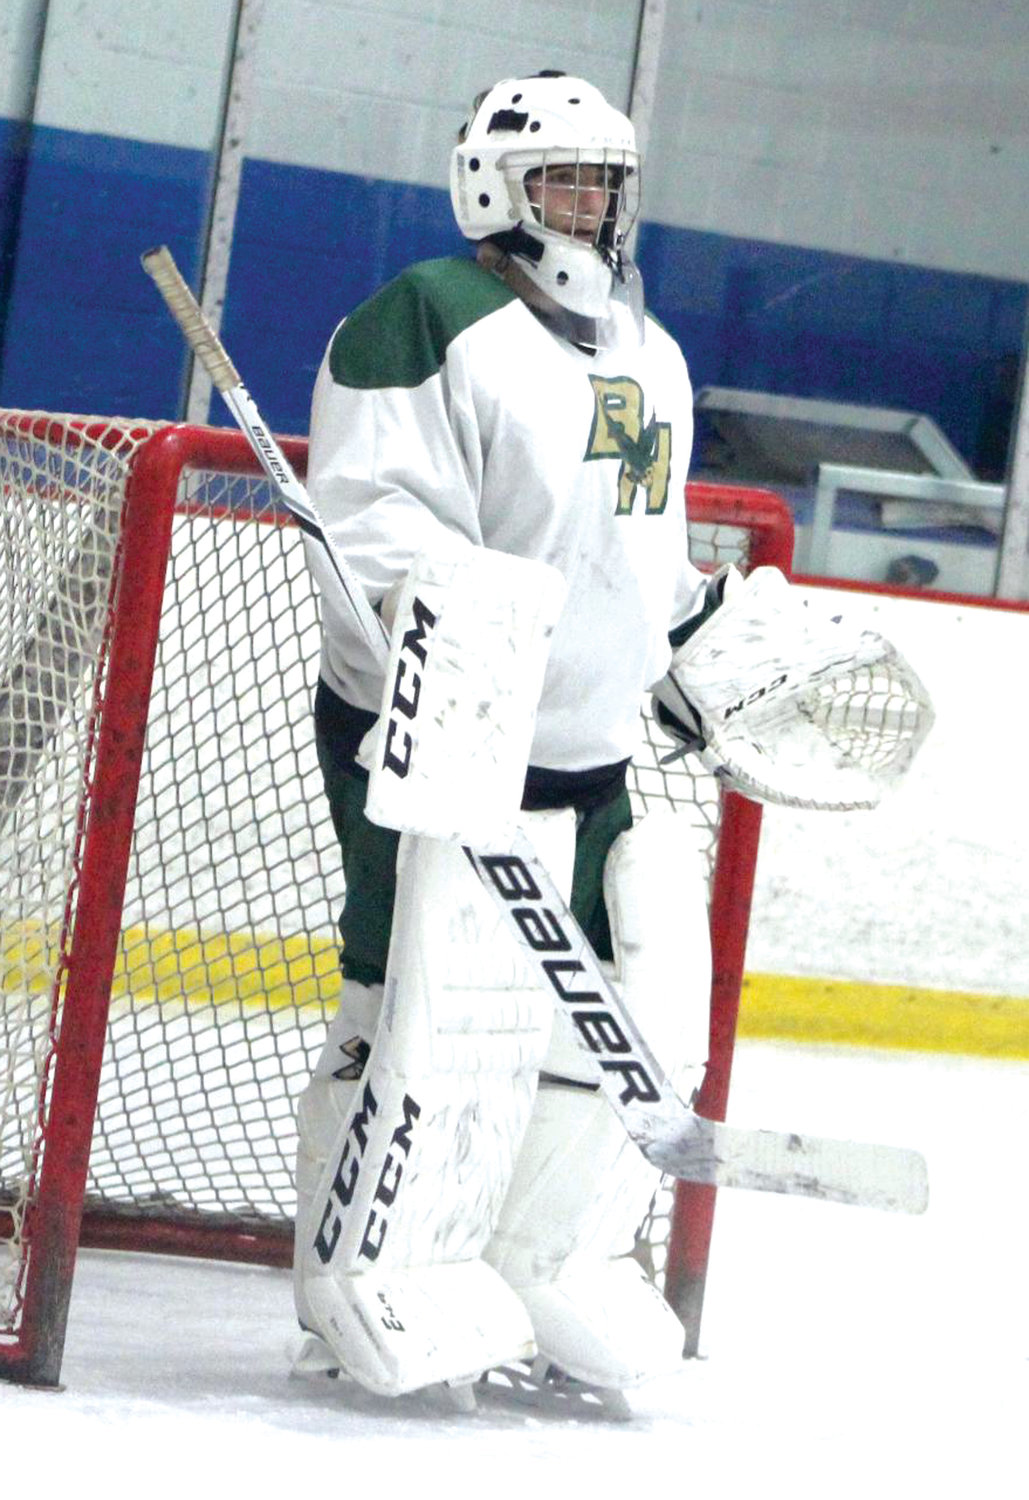 BETWEEN THE PIPES: Hendricken goalie Zach Marzano.